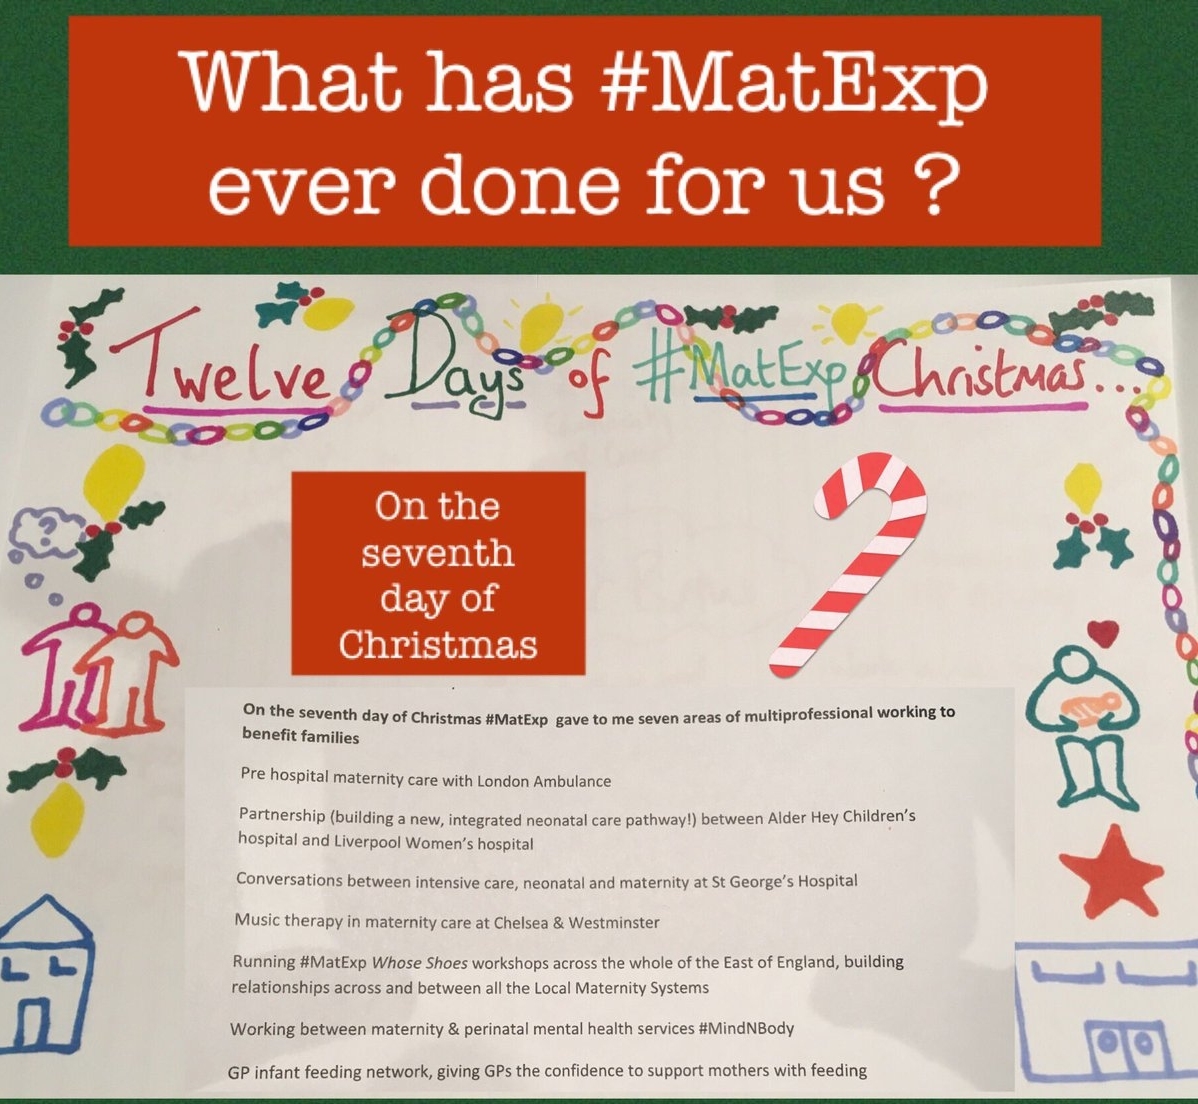 MatExp 12 days of Christmas Day 7